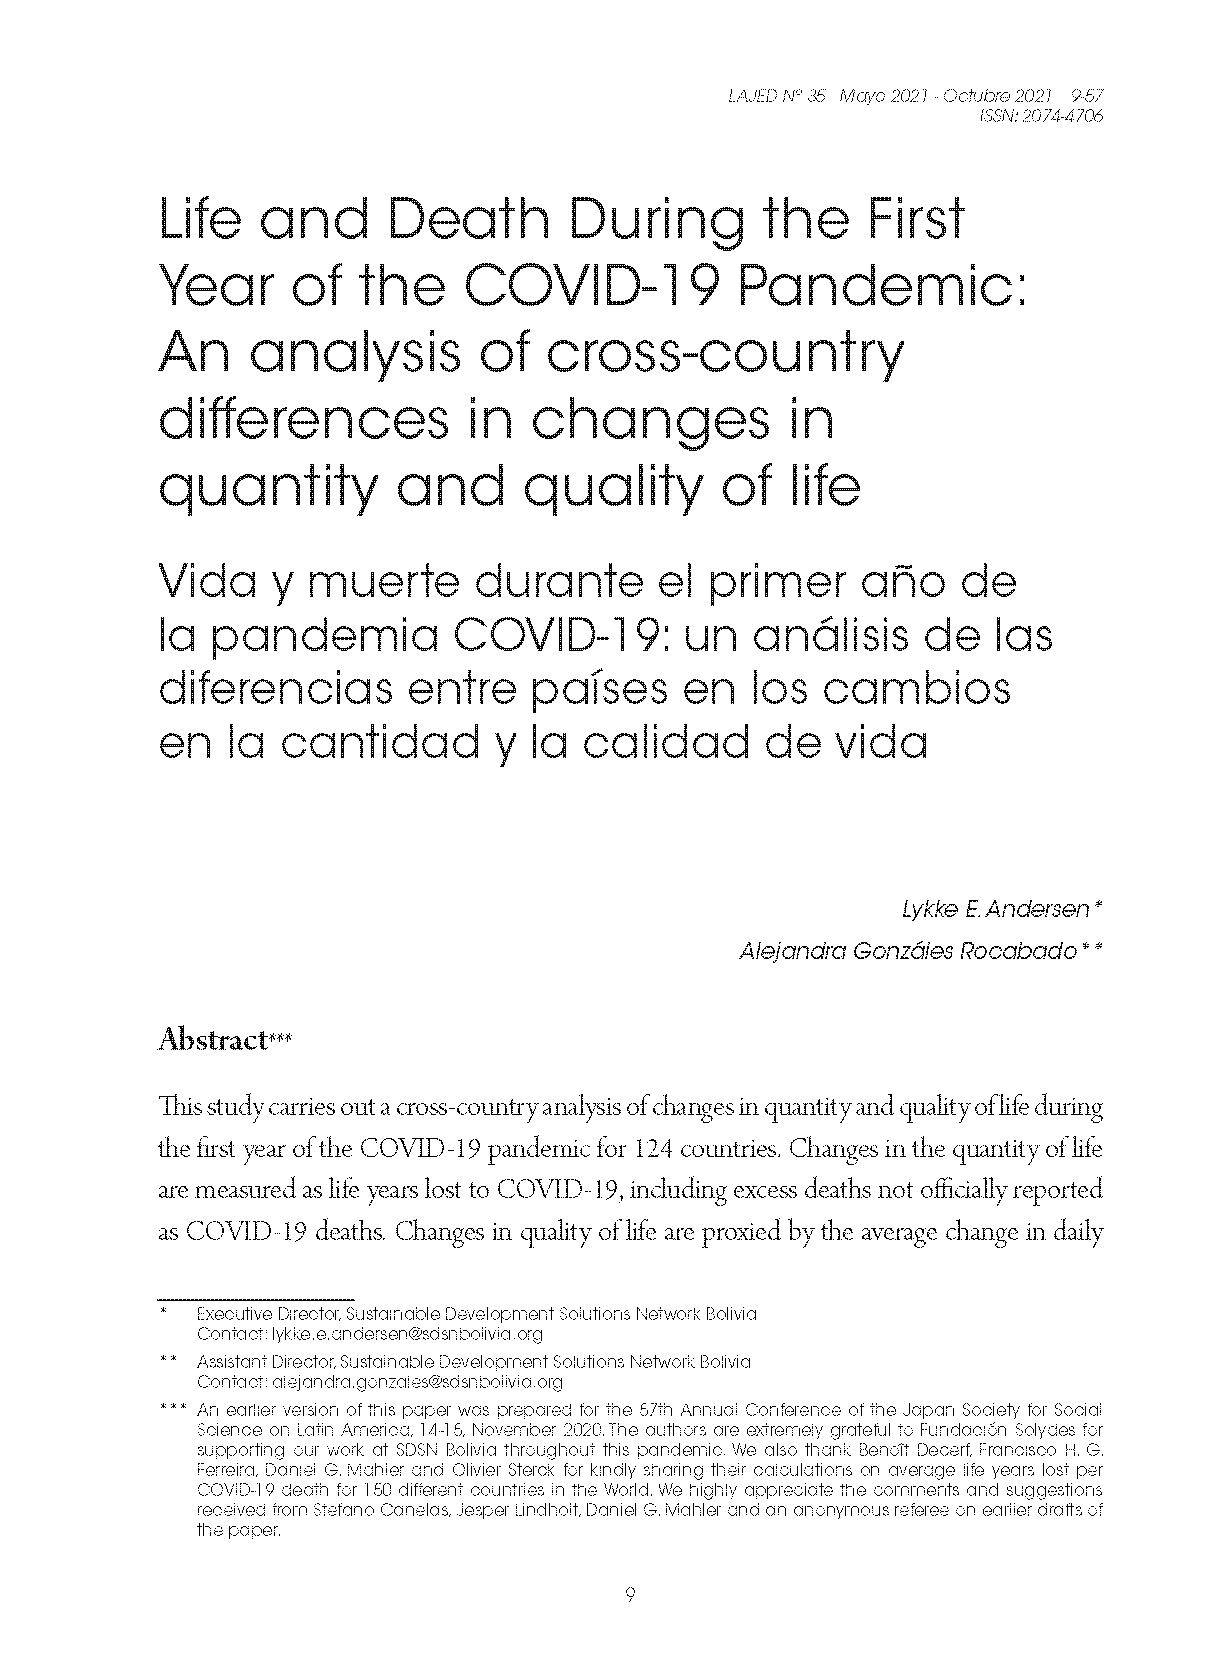 Life and Death During the First Year of the COVID-19 Pandemic: An analysis of cross-country differences in changes in quantity and quality of life